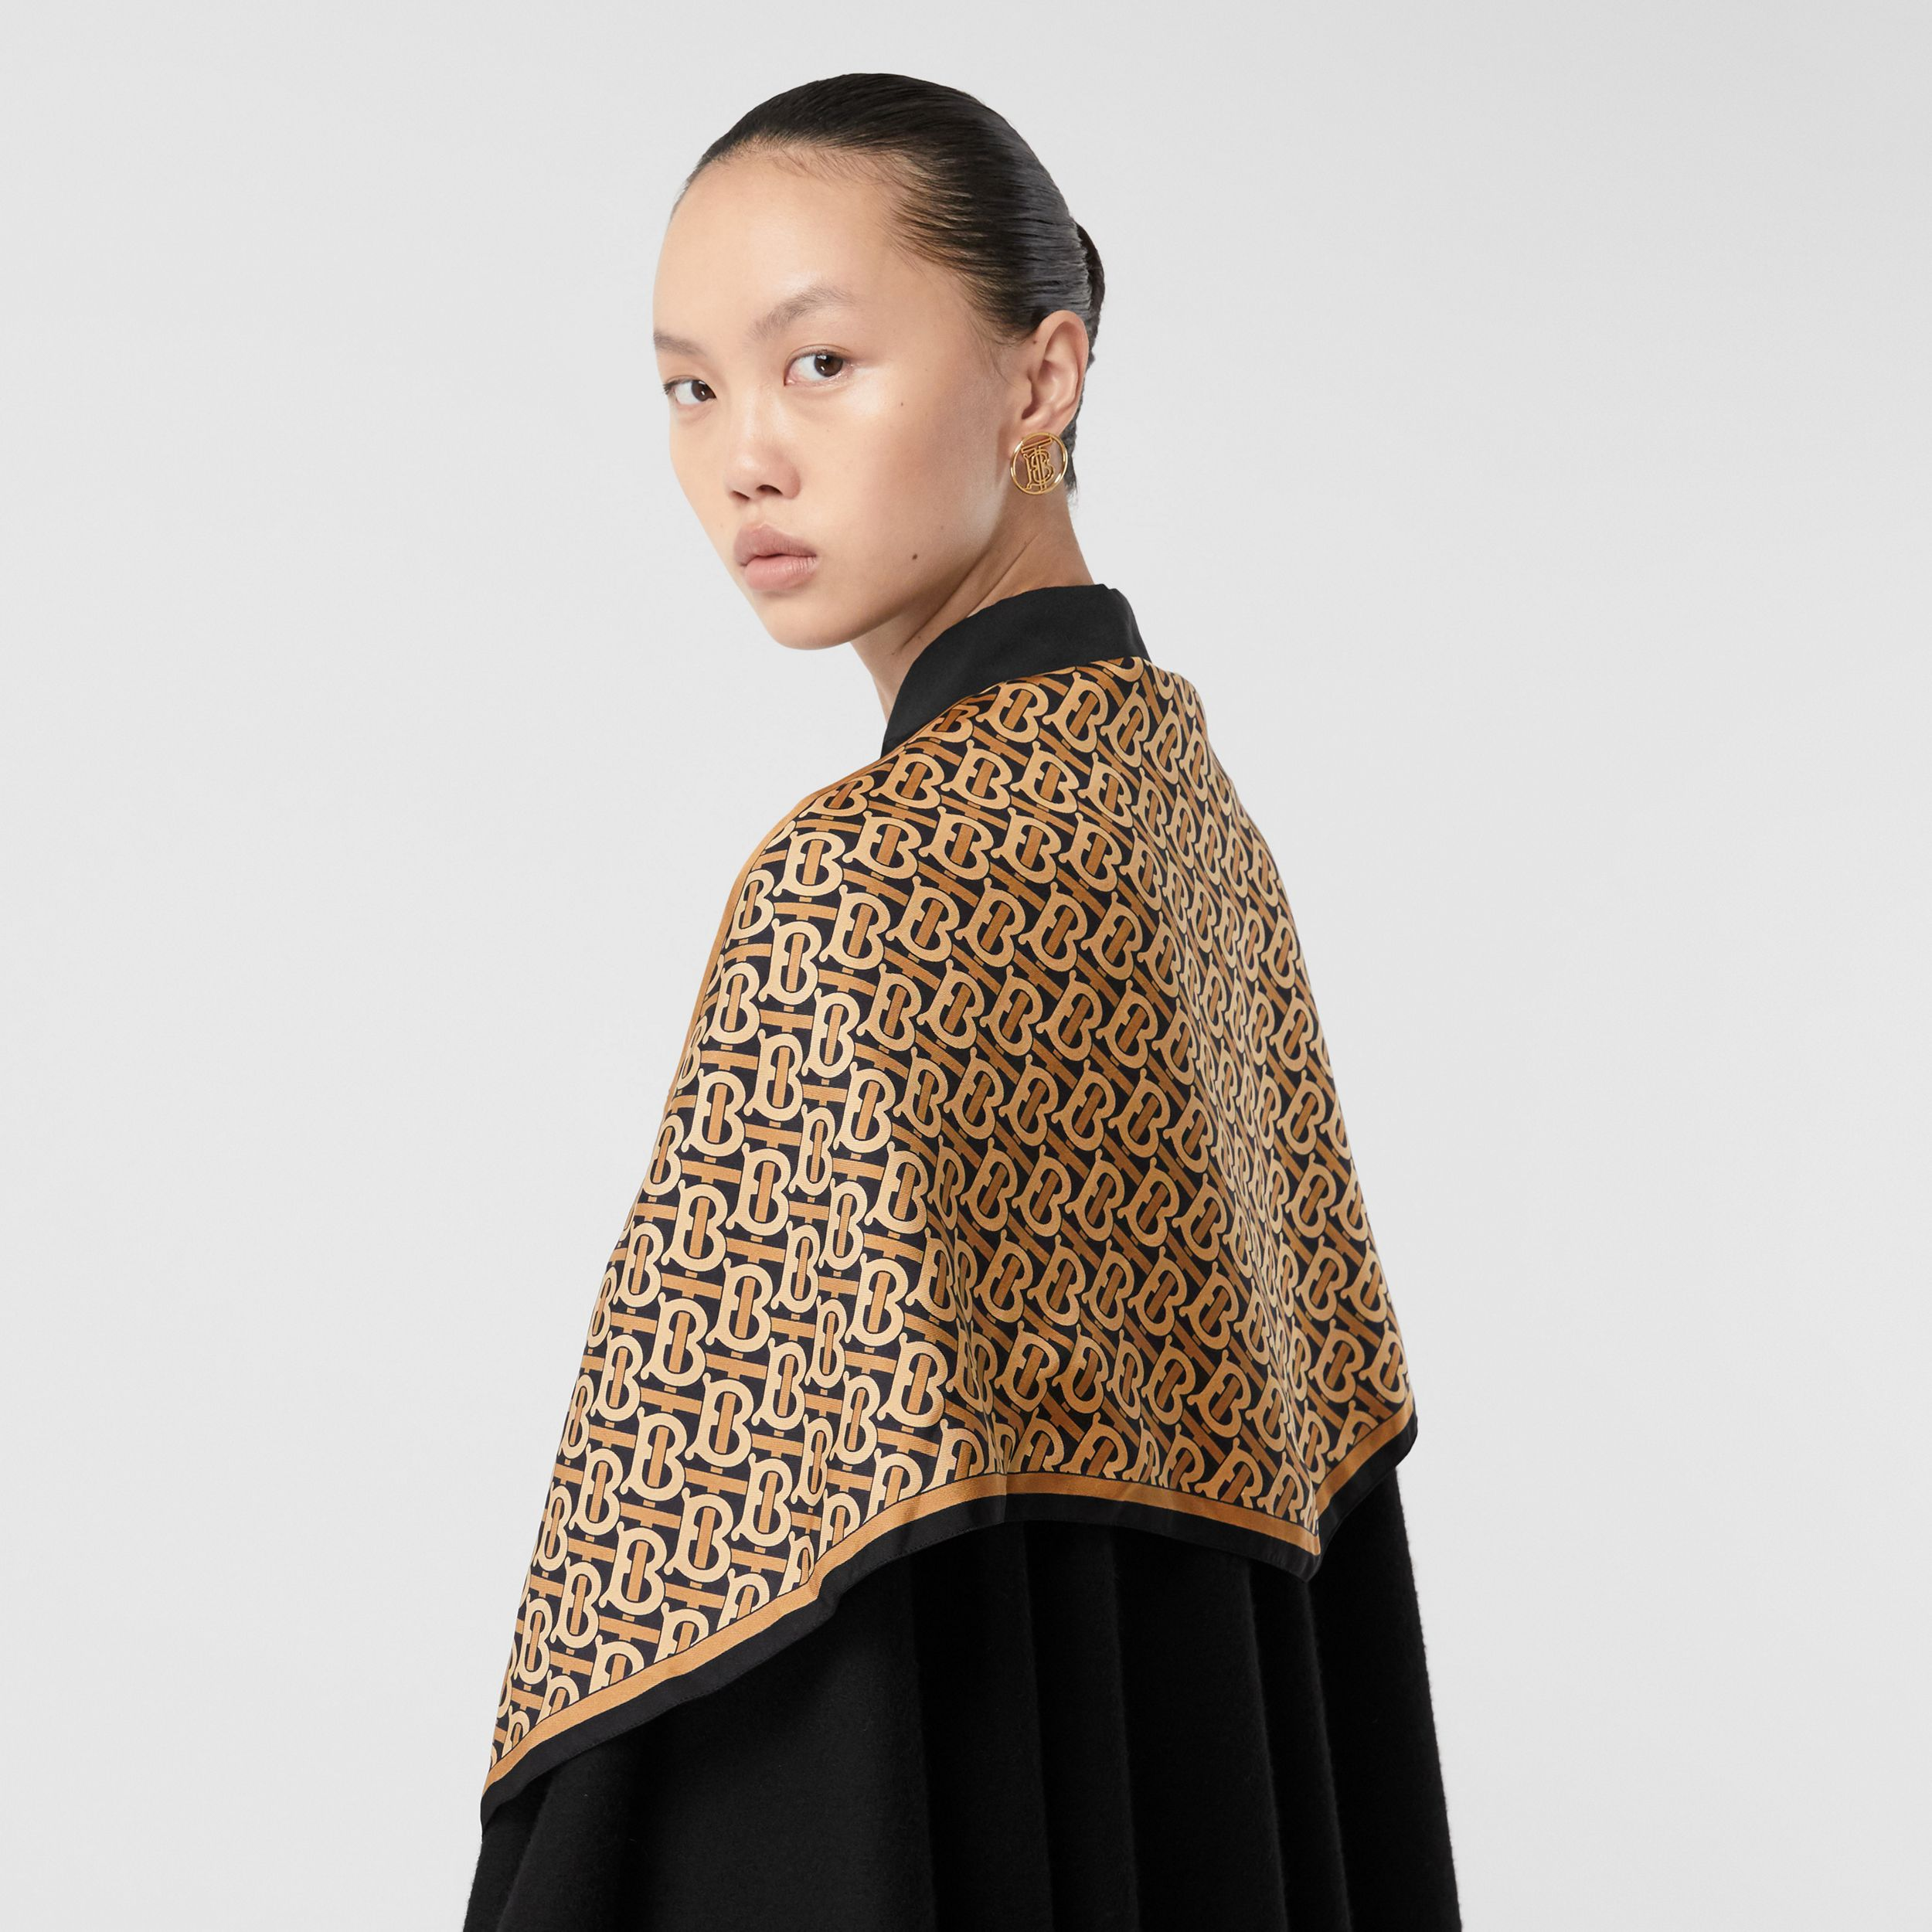 Detachable Monogram Print Scarf Cashmere Cape in Black - Women | Burberry - 2